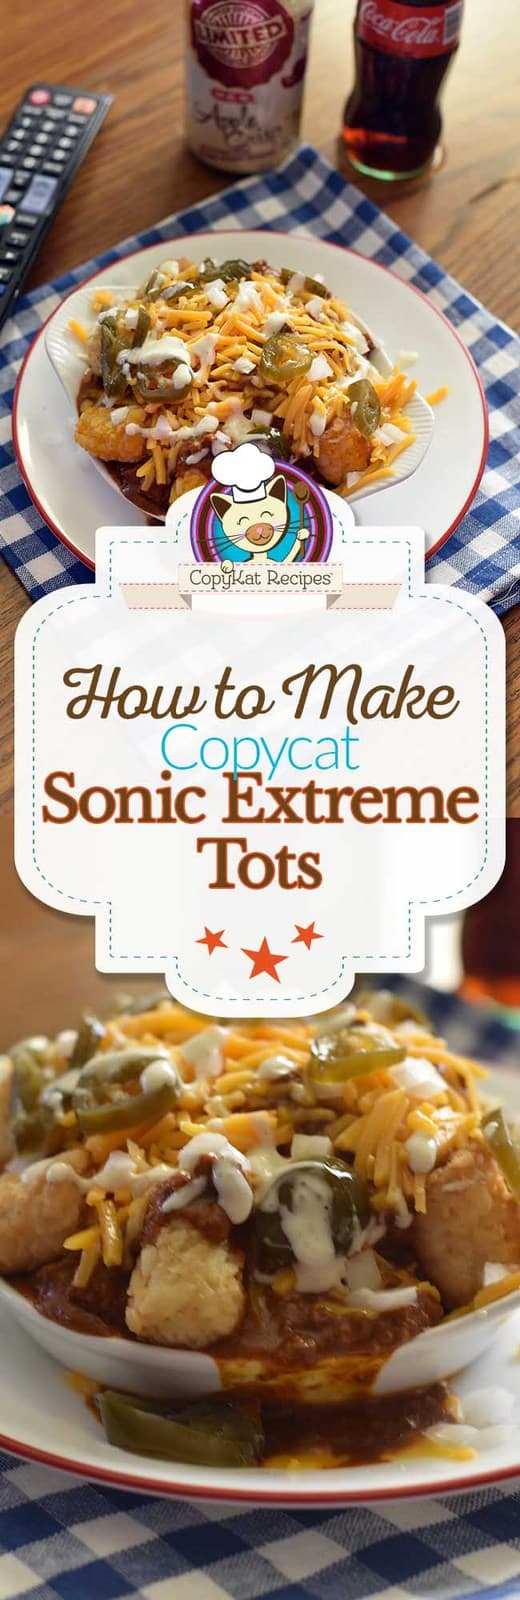 Make your next game or movie night fun when you serve up a platter of Sonic Extreme Tots! #tatertots #sonic #copycat #recipe